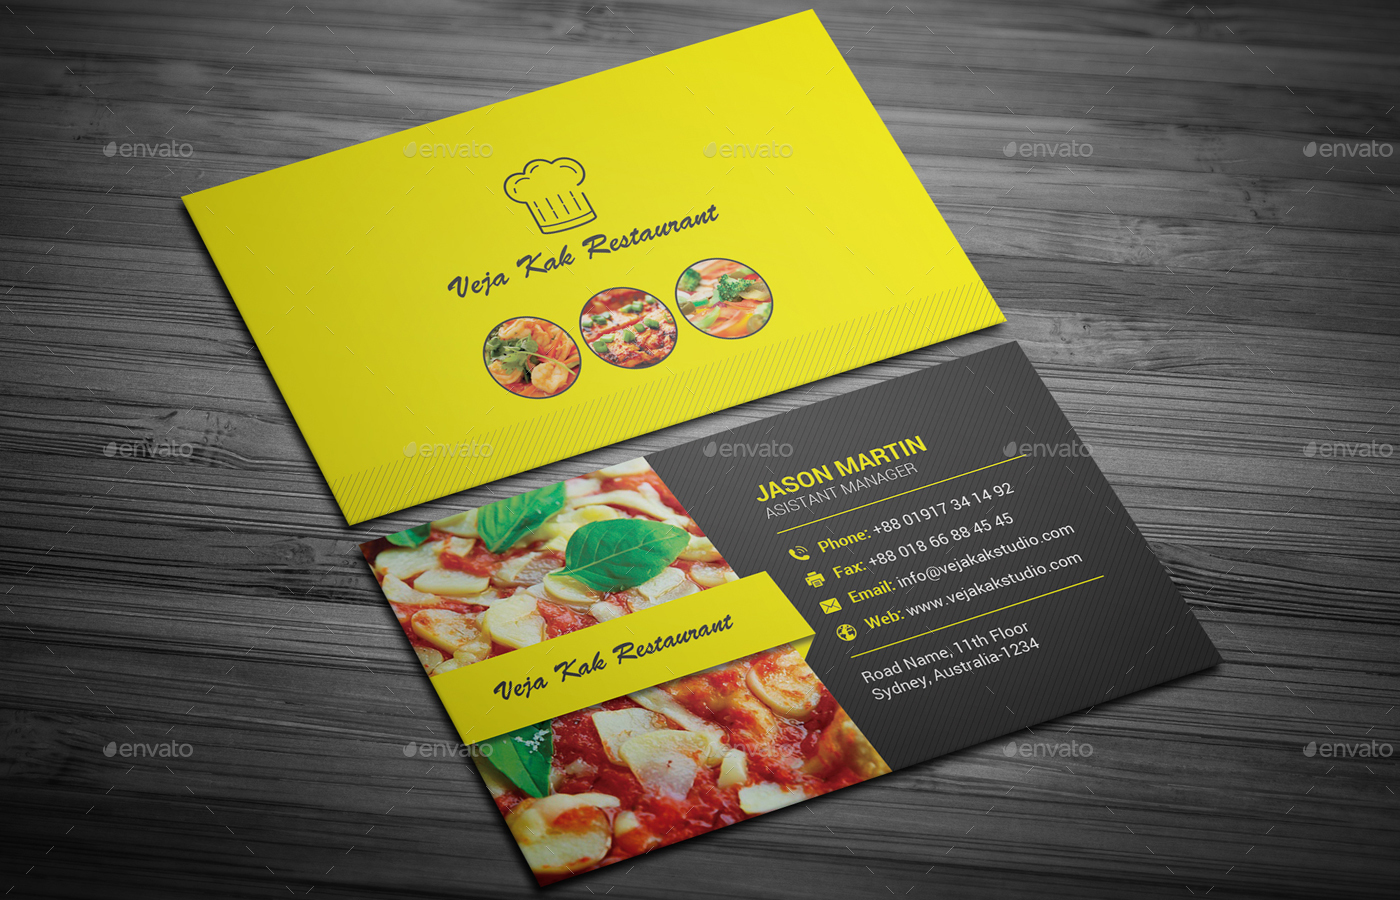 restaurant business card industry specific business cards preview_01jpg preview_02jpg preview_03jpg preview_04jpg - Restaurant Business Card